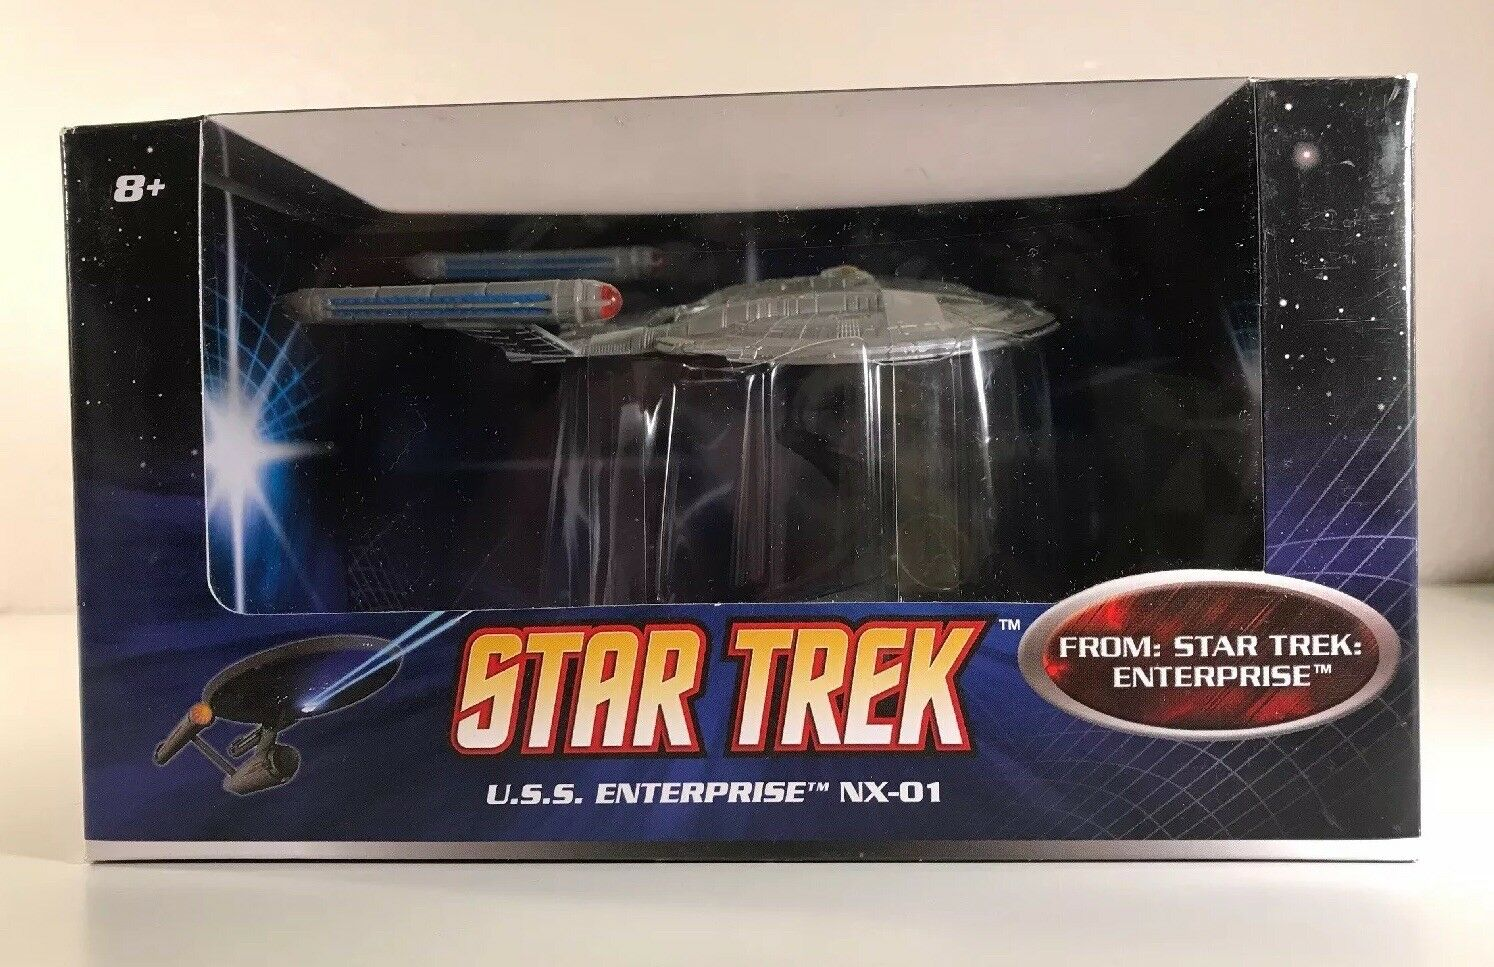 Star Trek USS Enterprise NX-01 Model With Stand Mattel Hotwheels New In Box